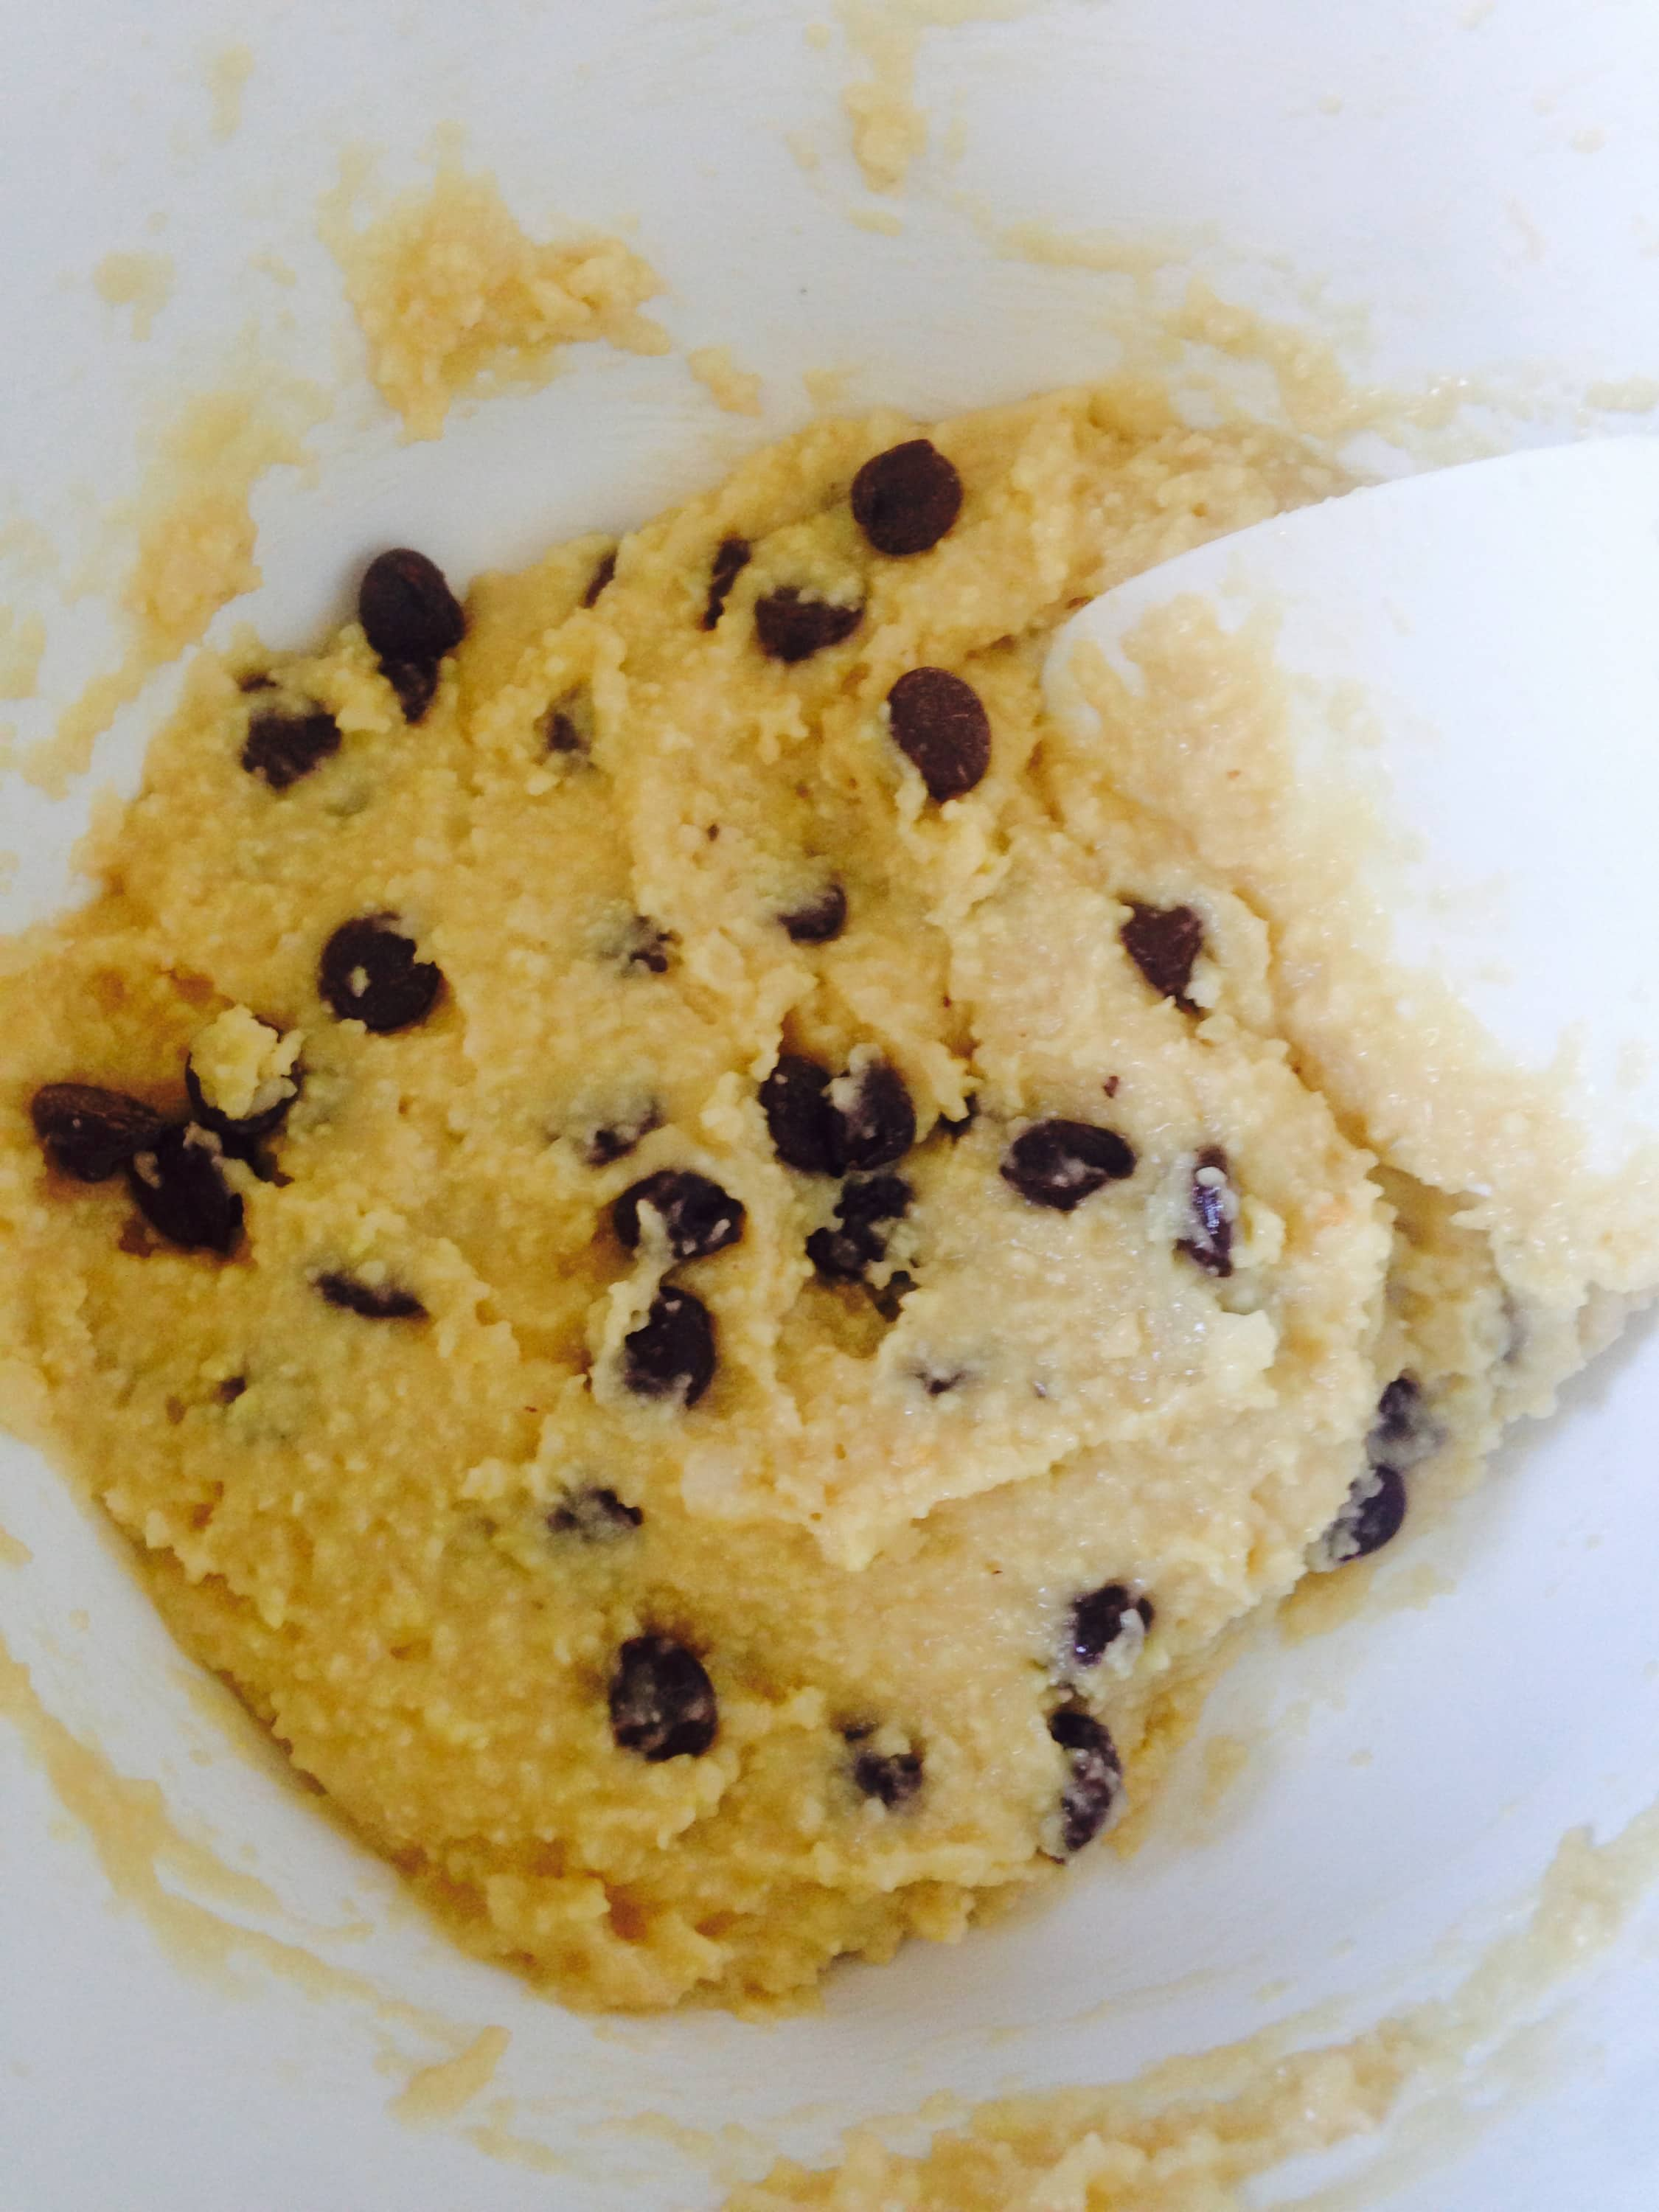 Unbaked dough for FIXATE Gluten Free Chocolate Chip Cookies - A 21 Day Fix approved treat recipe | ConfessionsOfAFitFoodie.com